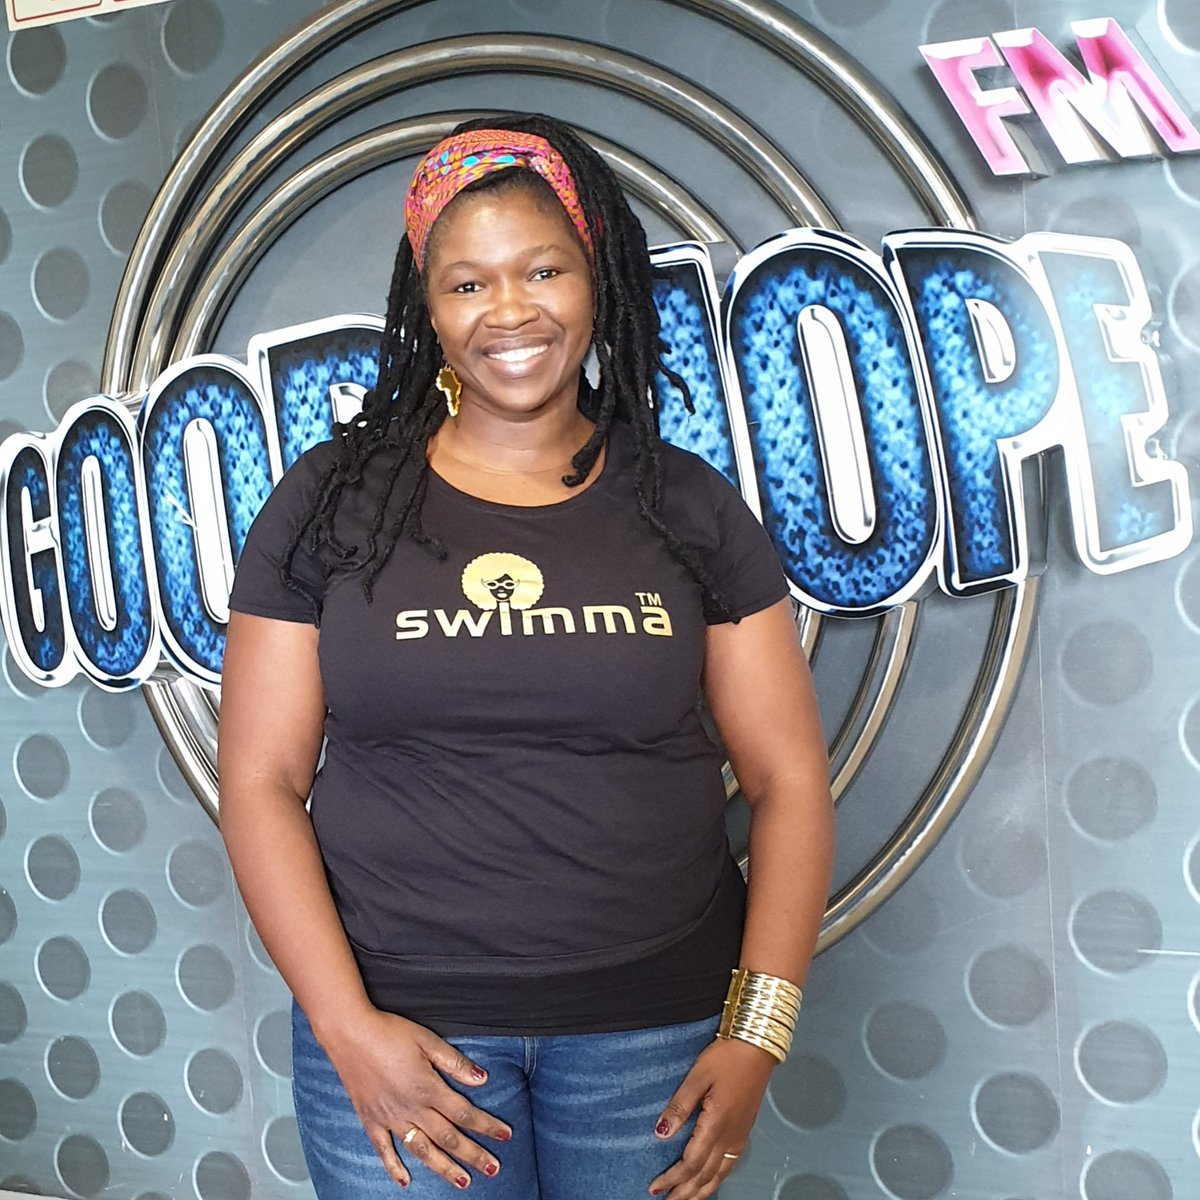 GoodhopeFm… tagged Tweets and Download Twitter MP4 Videos